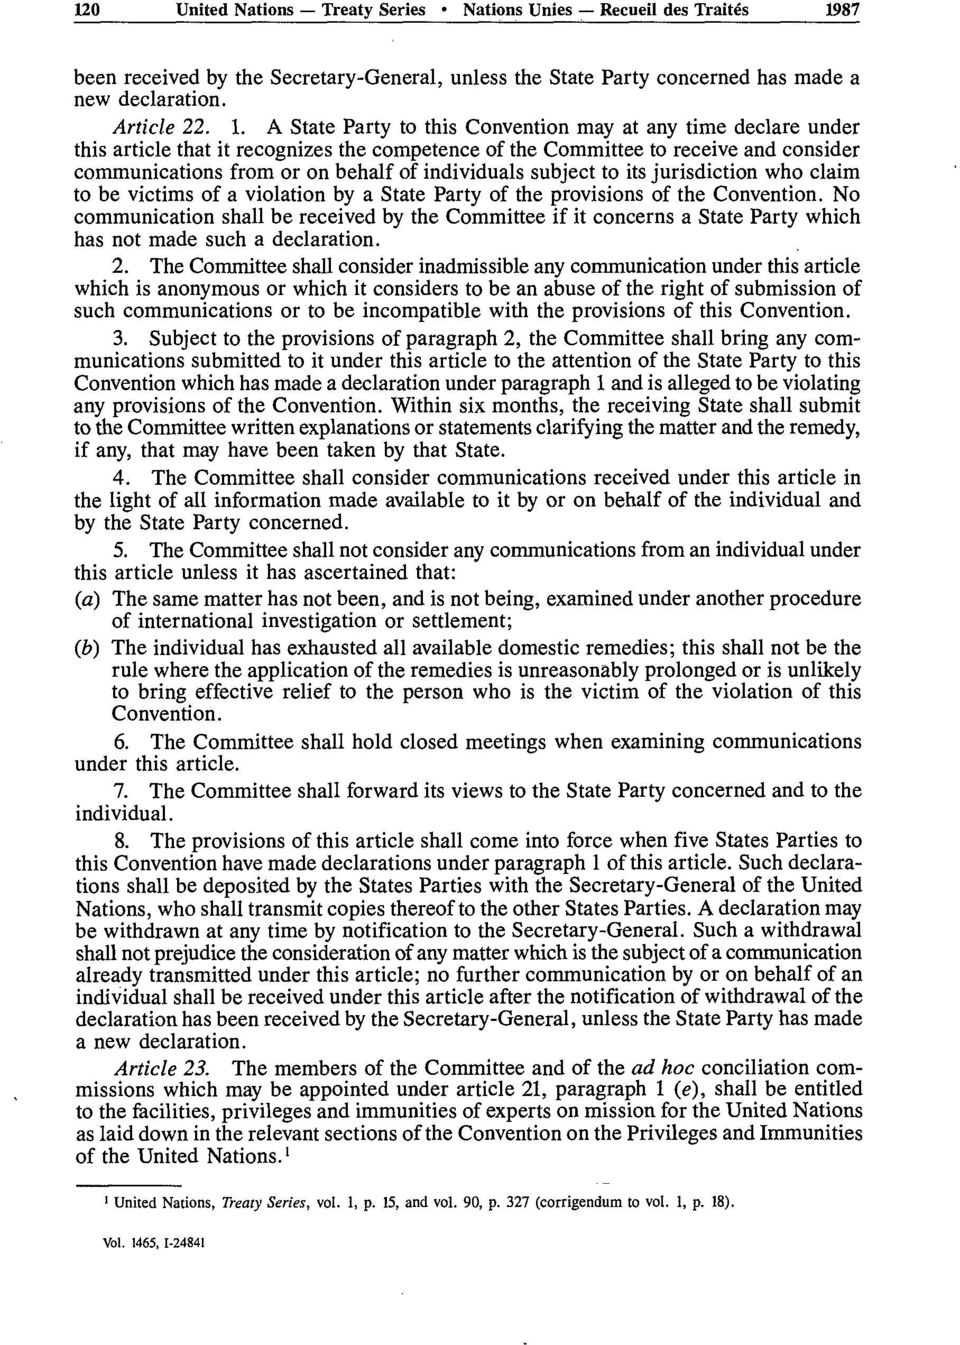 A State Party to this Convention may at any time declare under this article that it recognizes the competence of the Committee to receive and consider communications from or on behalf of individuals